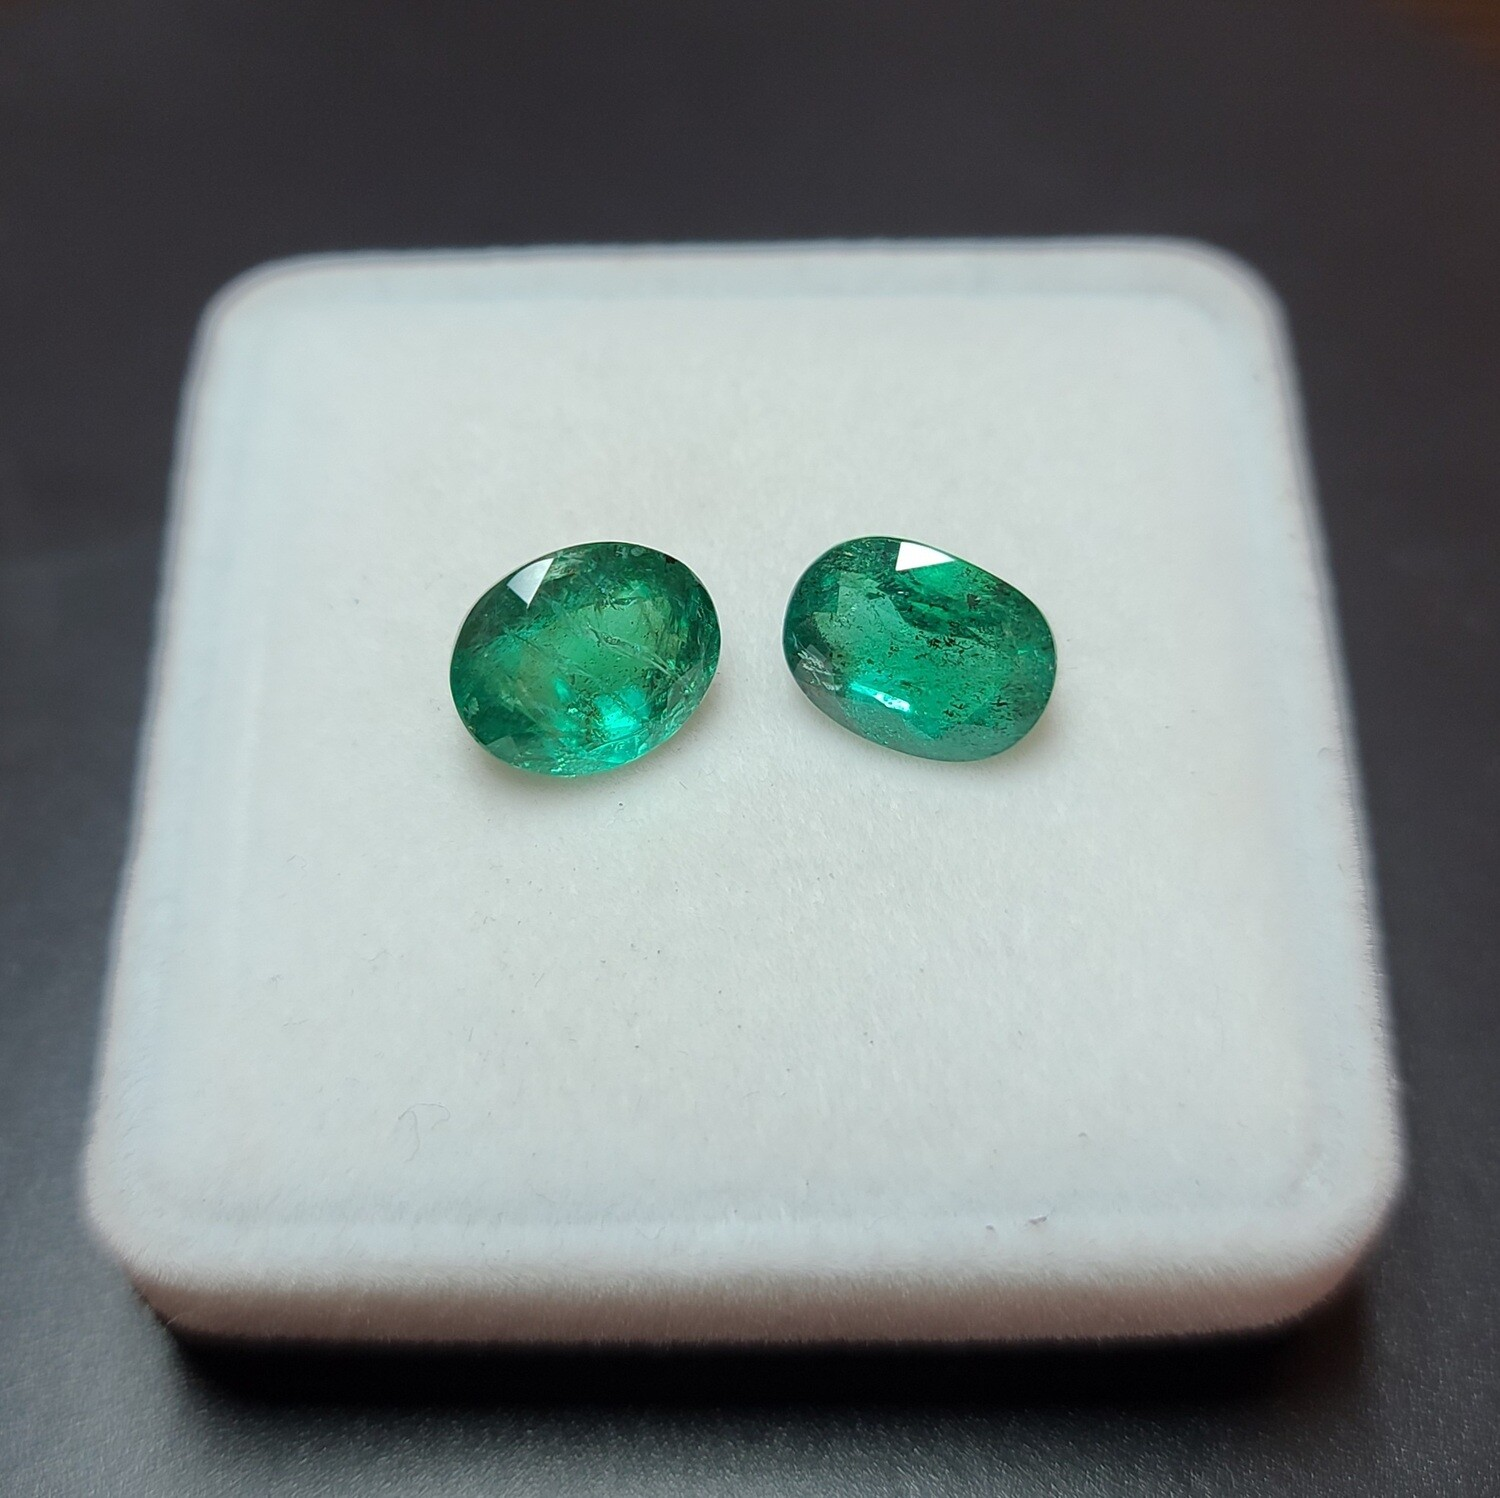 Emeralds Oval cut pair 3.77 ct and 4.58 ct